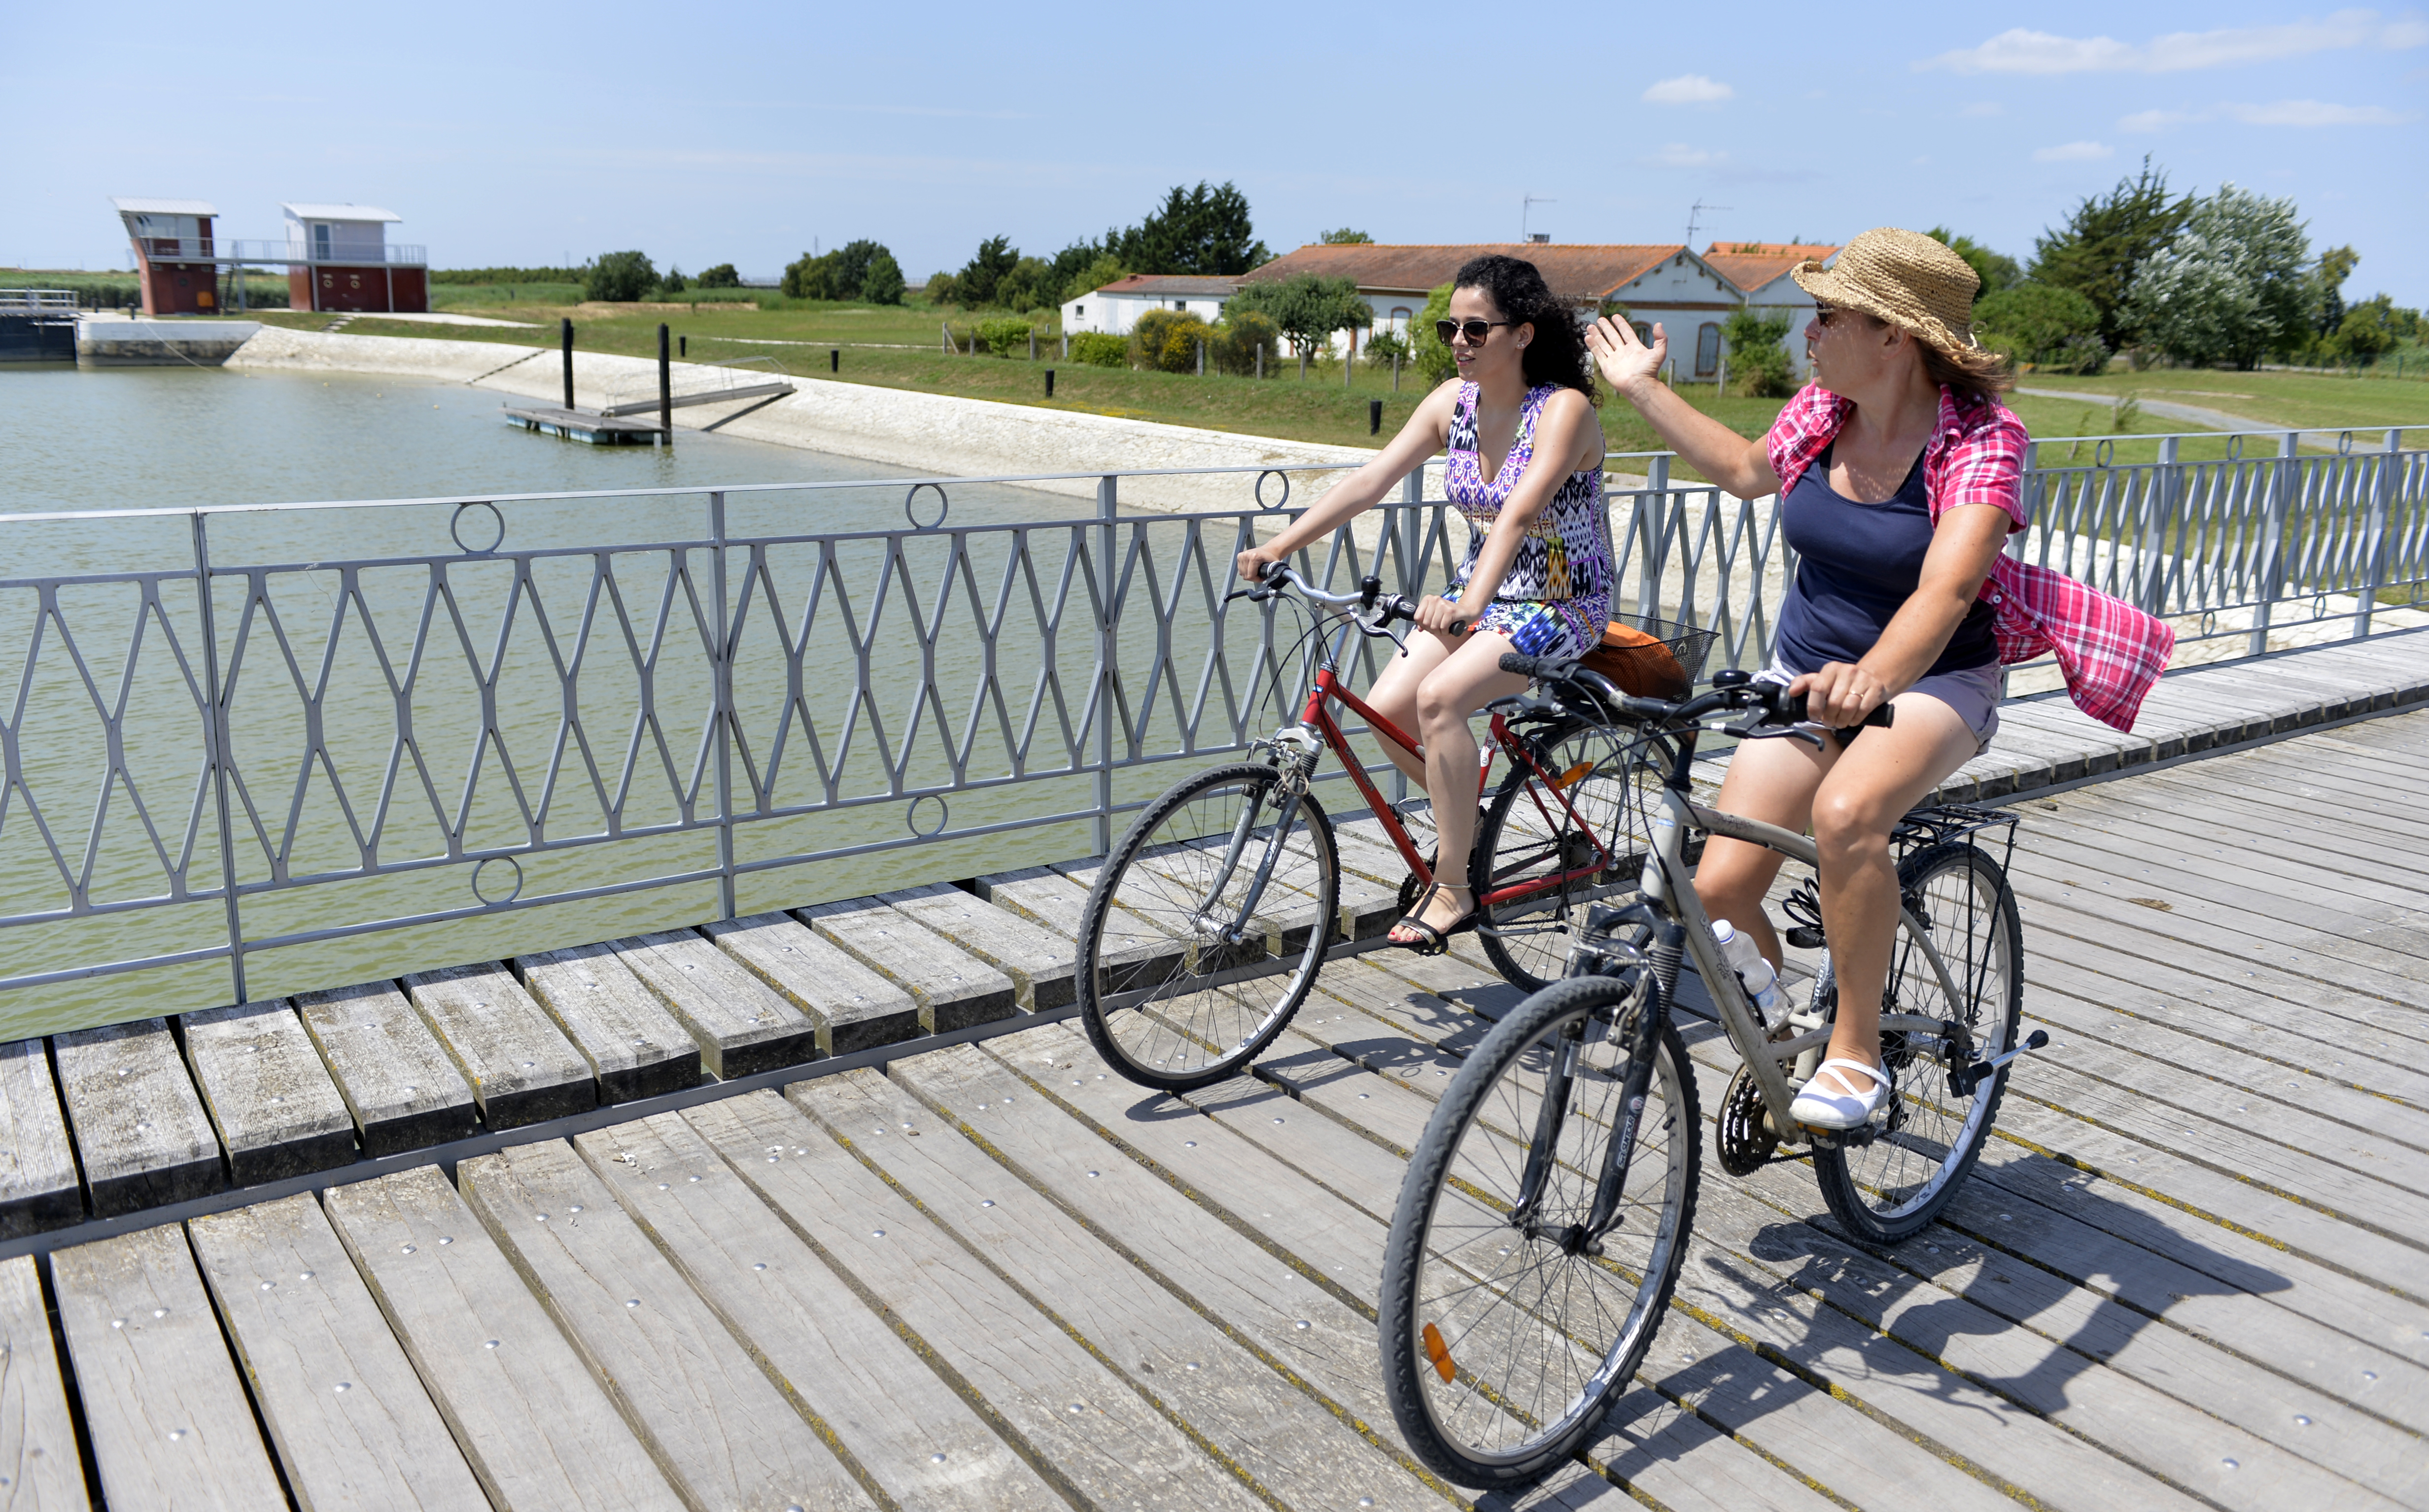 Bike ride on the Vélodyssée at the Brault locks in Marans.